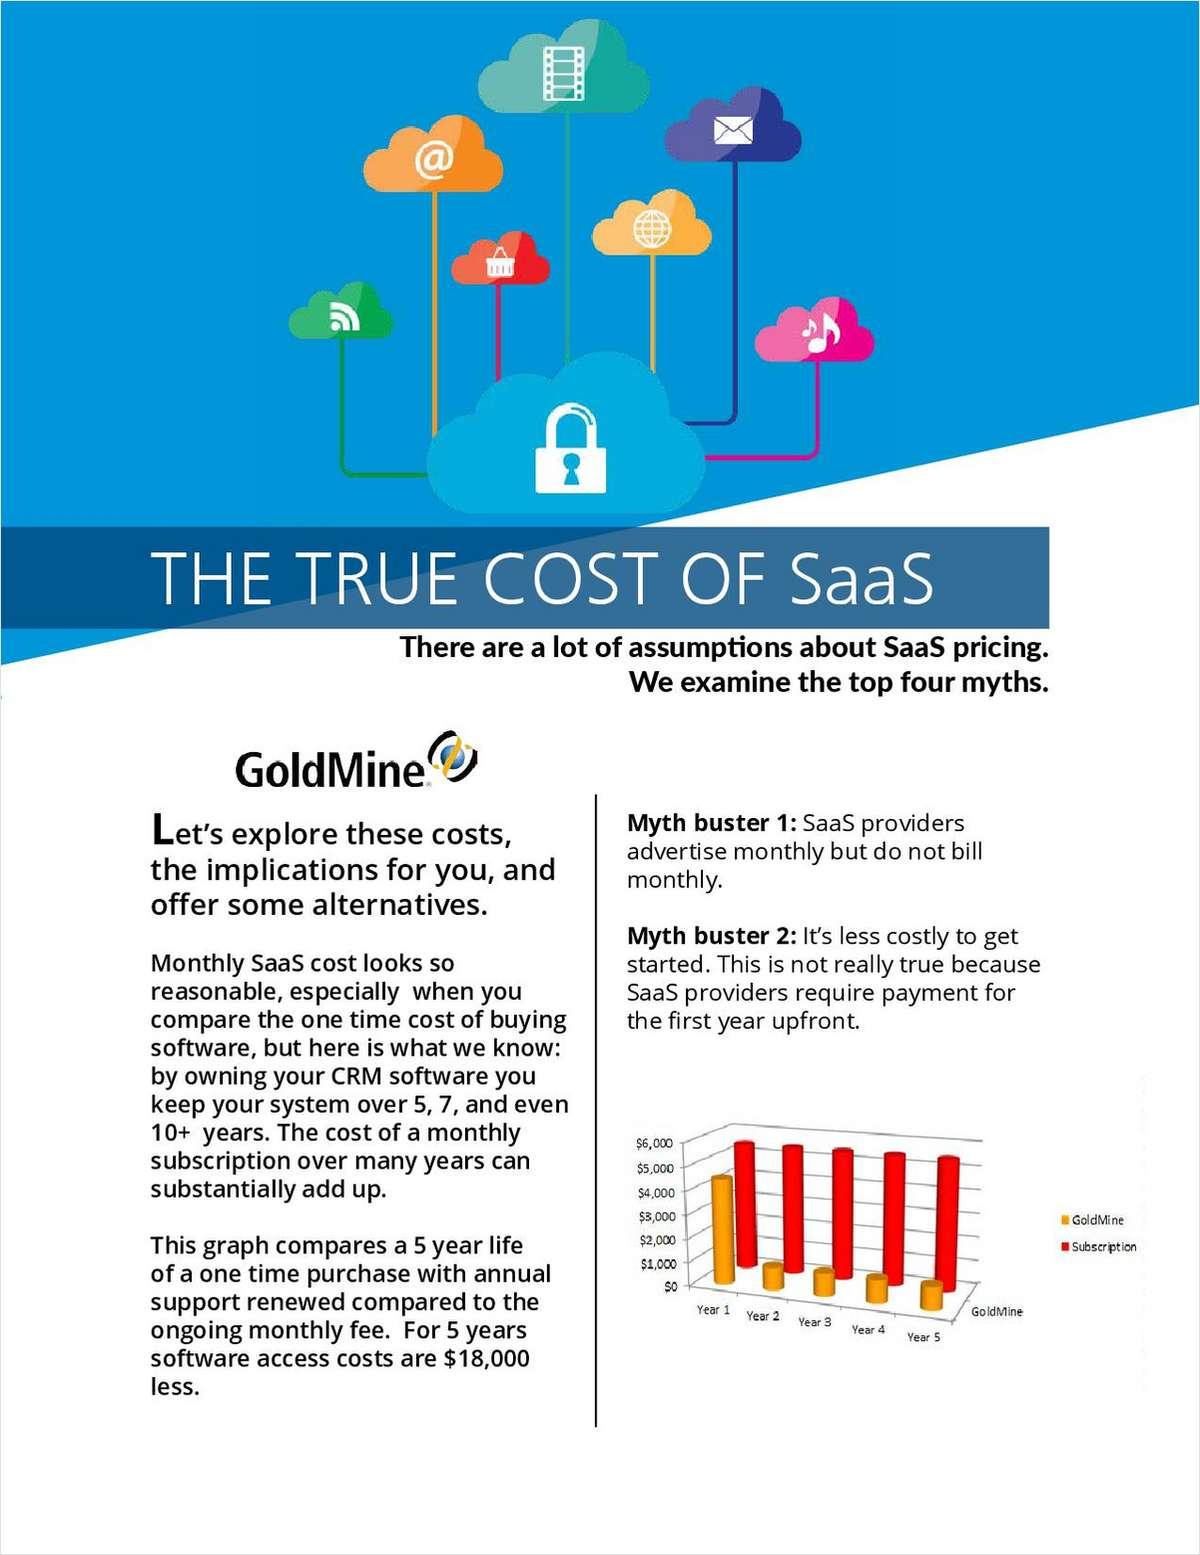 The True Cost of SaaS